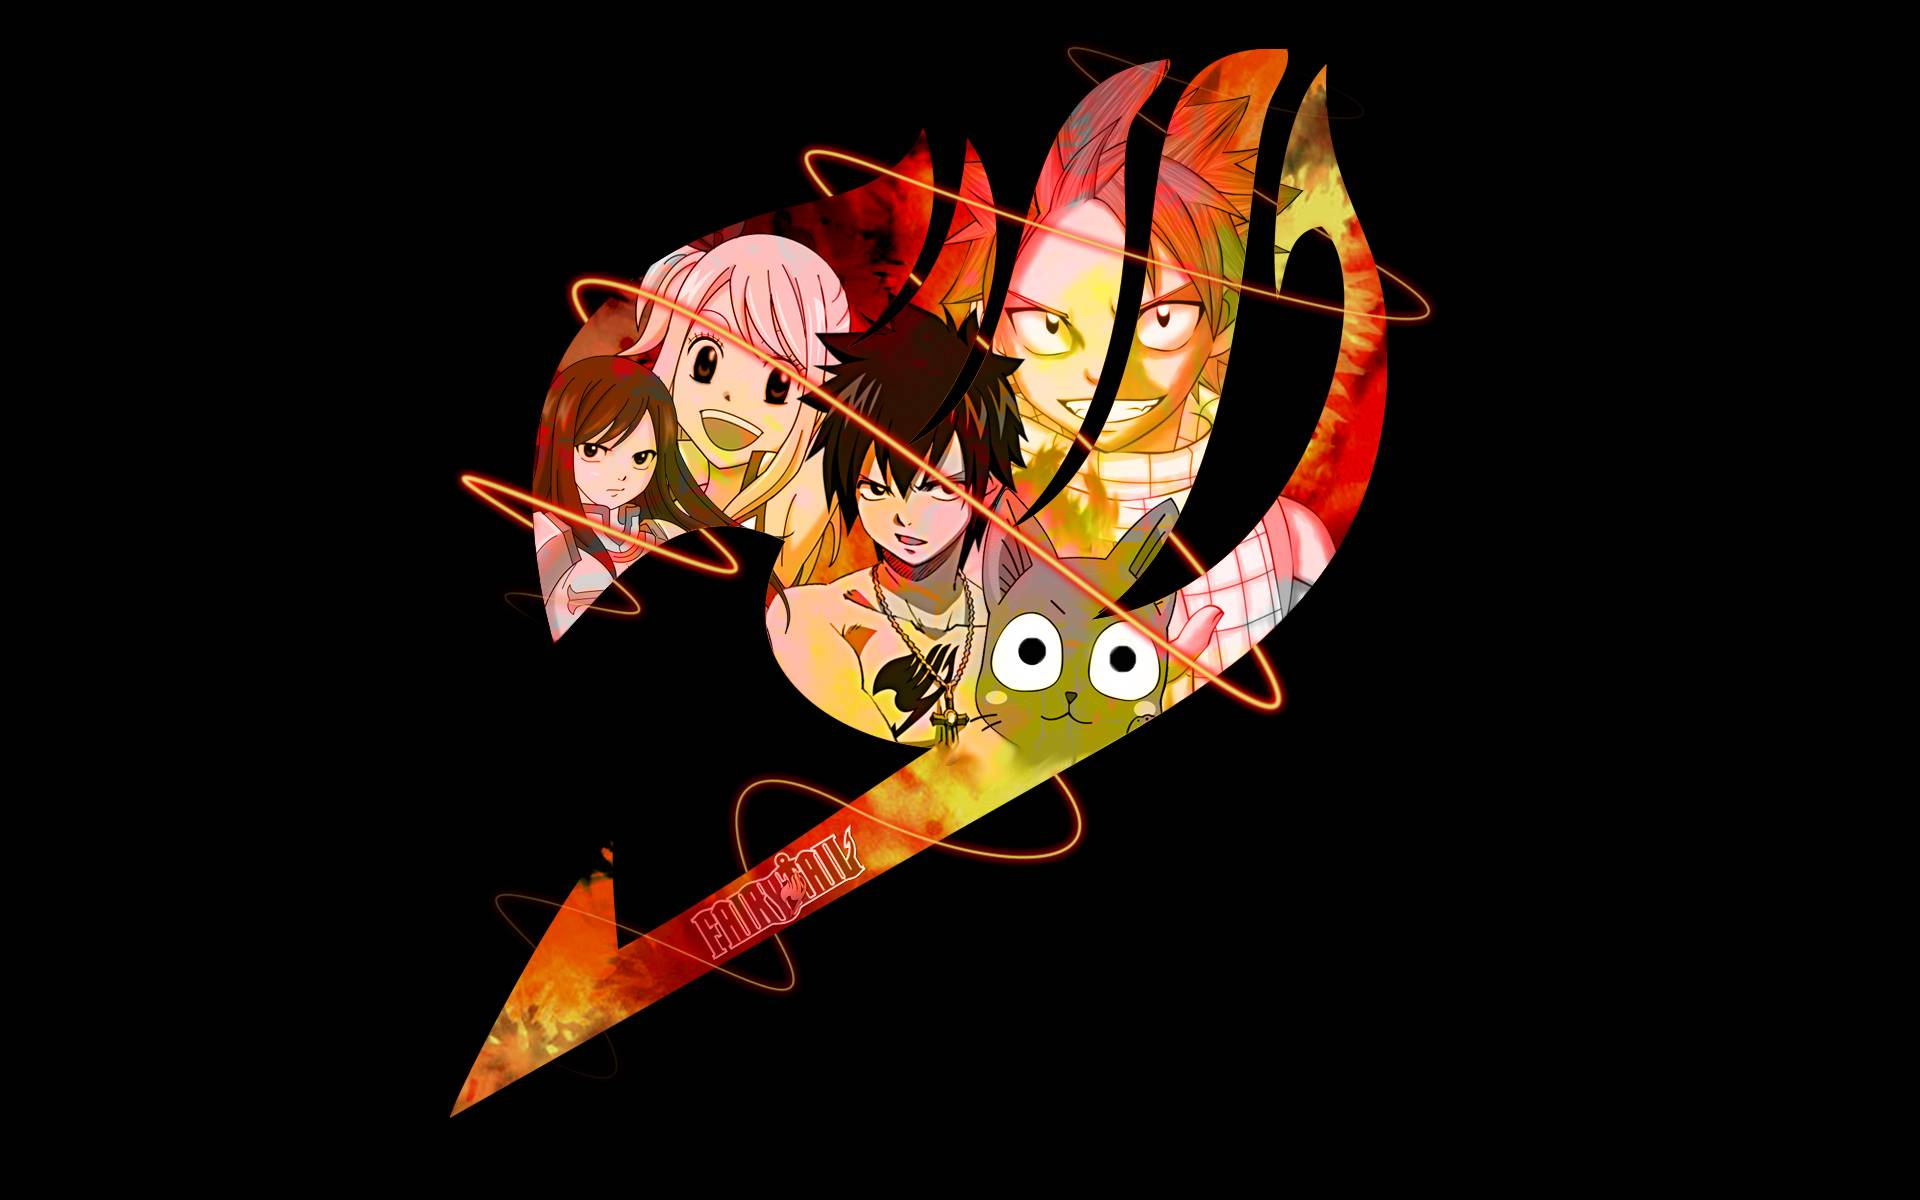 Fairy tail Cool Fairy tail wallpaper 1920x1200